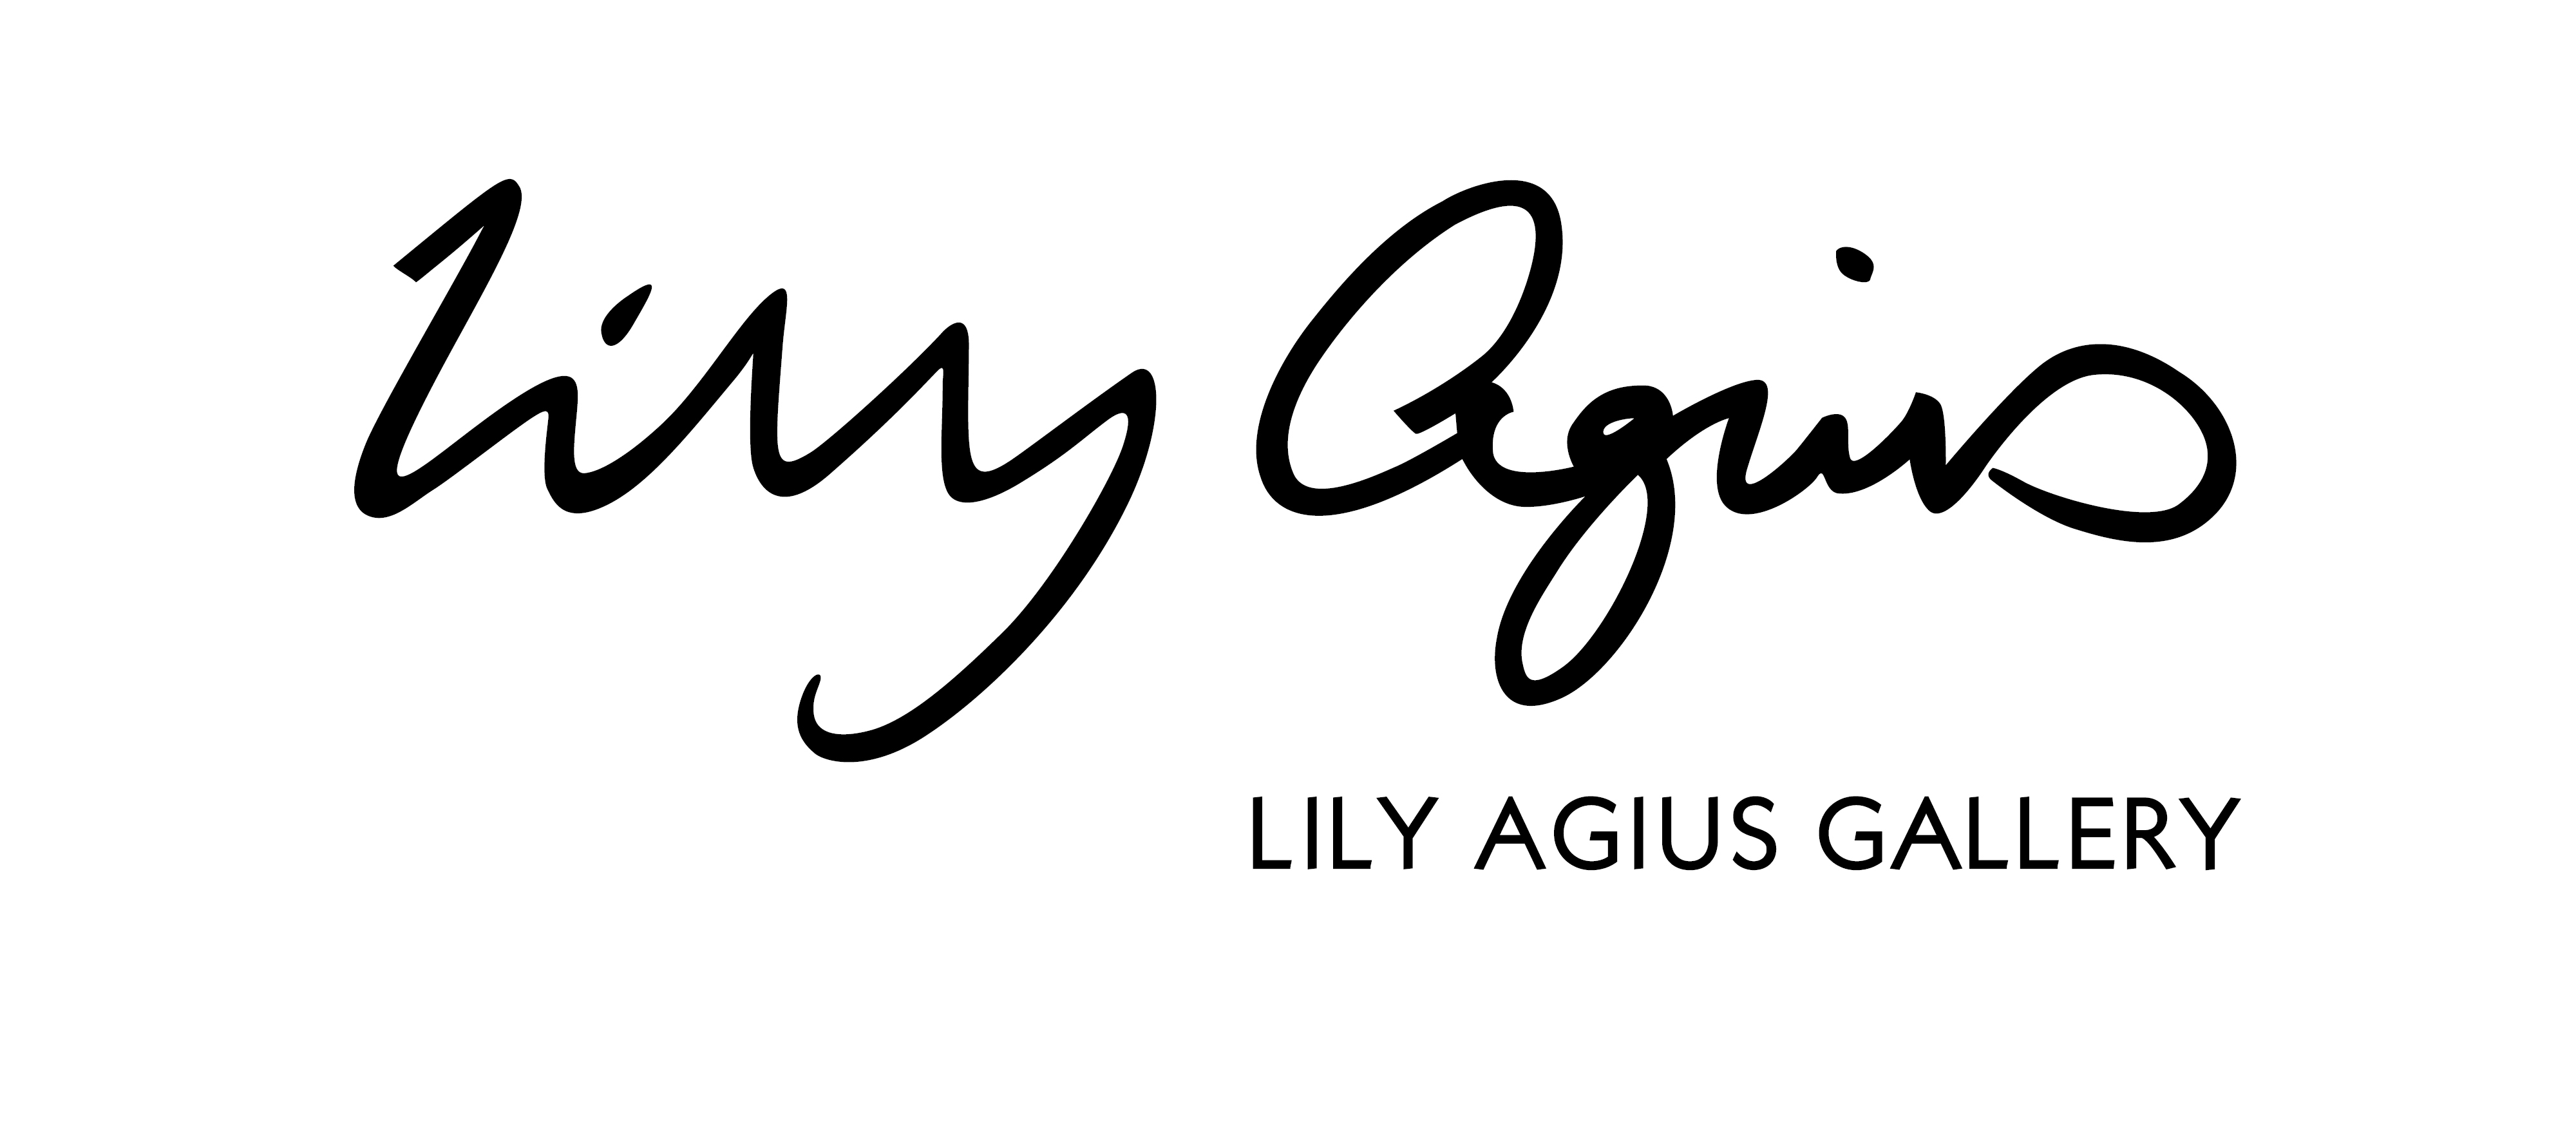 Lily Agius Gallery